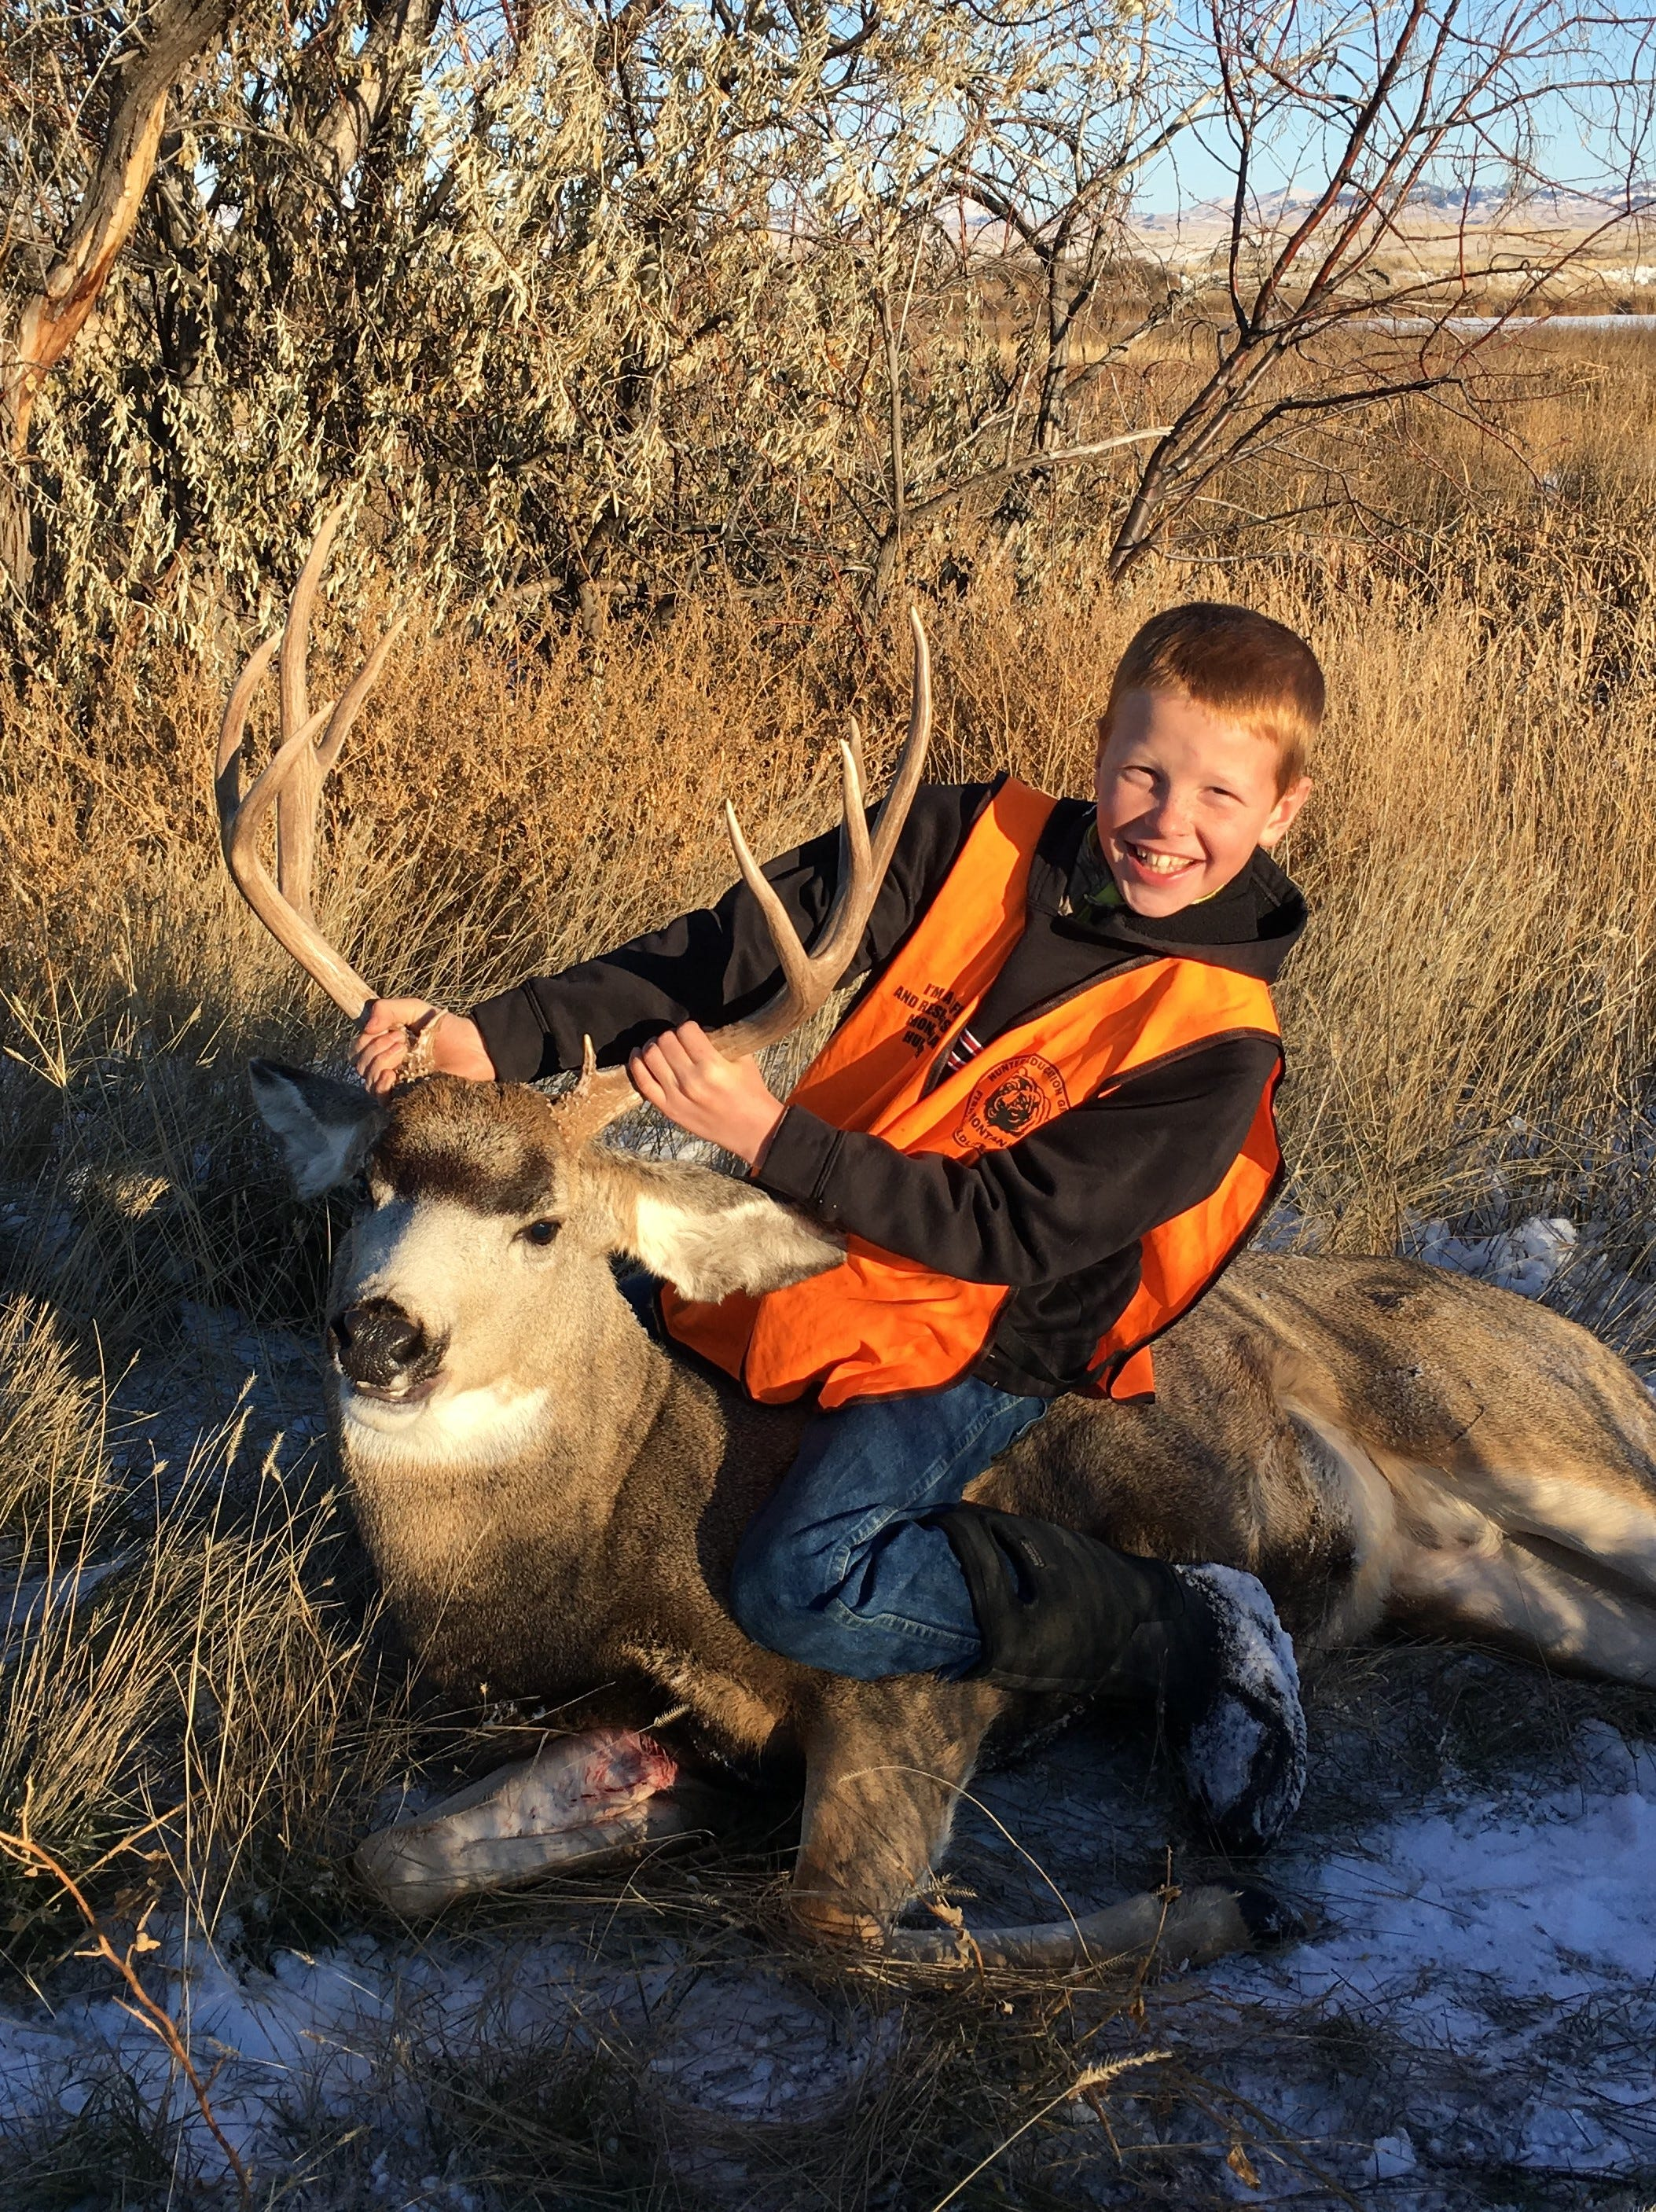 http://www greatfallstribune com/picture-gallery/outdoors/hunting/2014